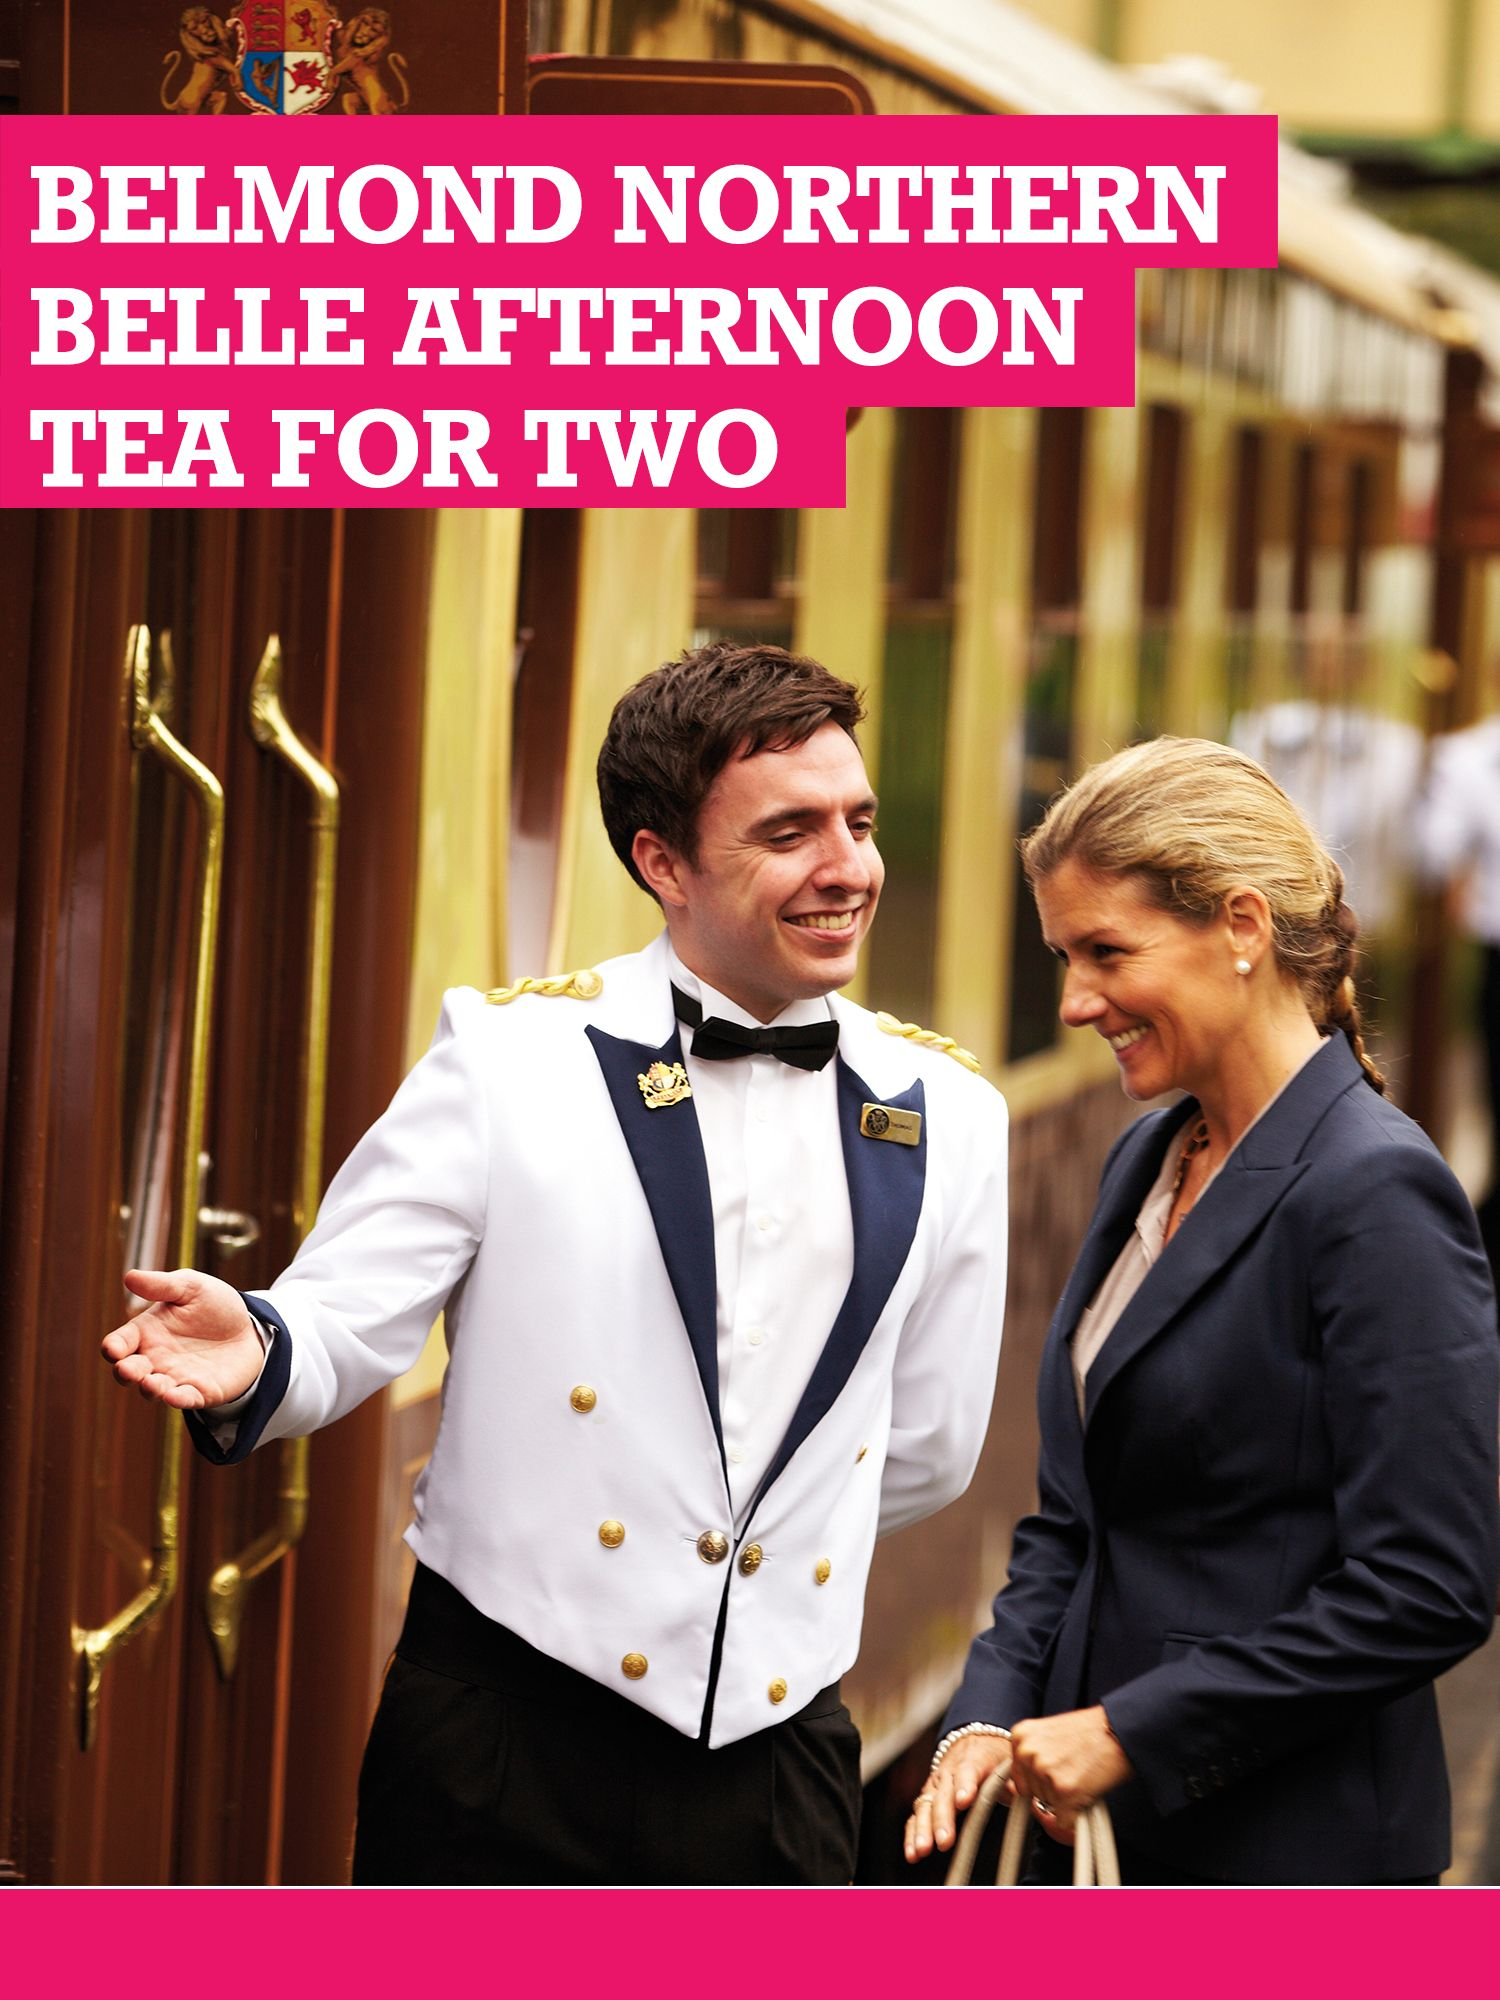 Buyagift Buyagift Belmond Northern Belle Afternoon Tea For Two